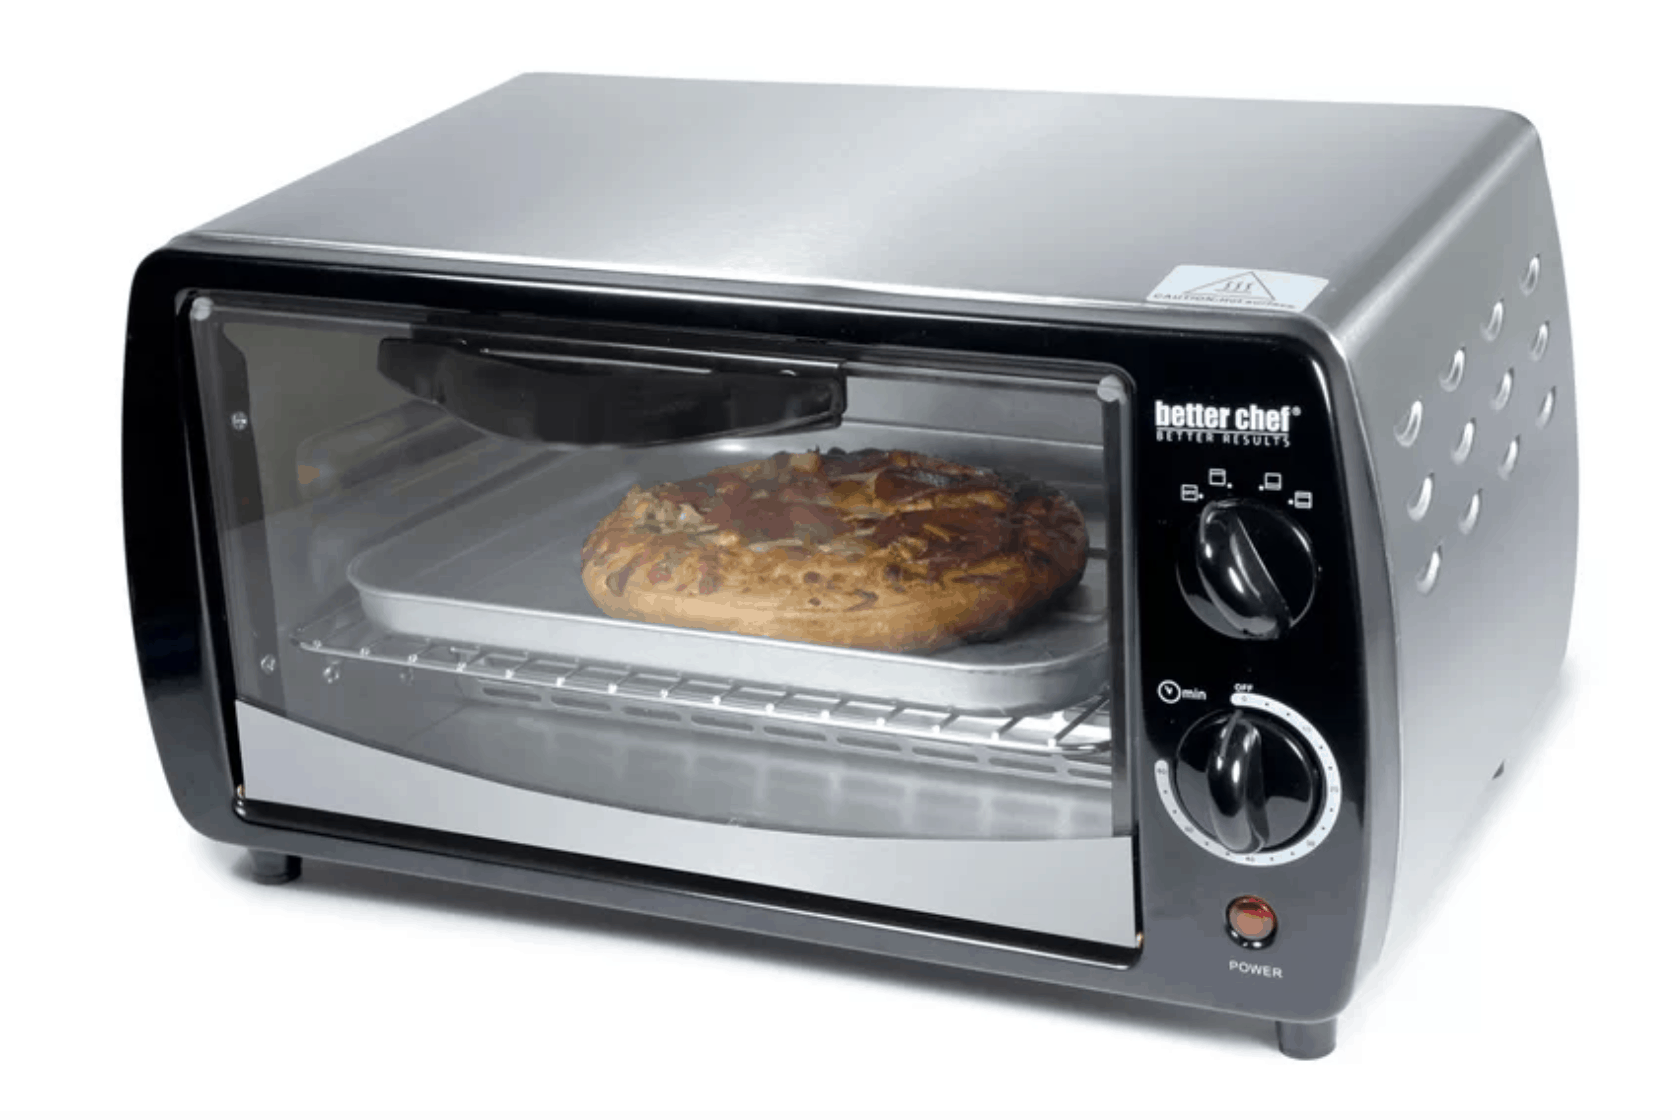 ovens oven baking outstanding small beautiful sunroom of for best countertop toaster